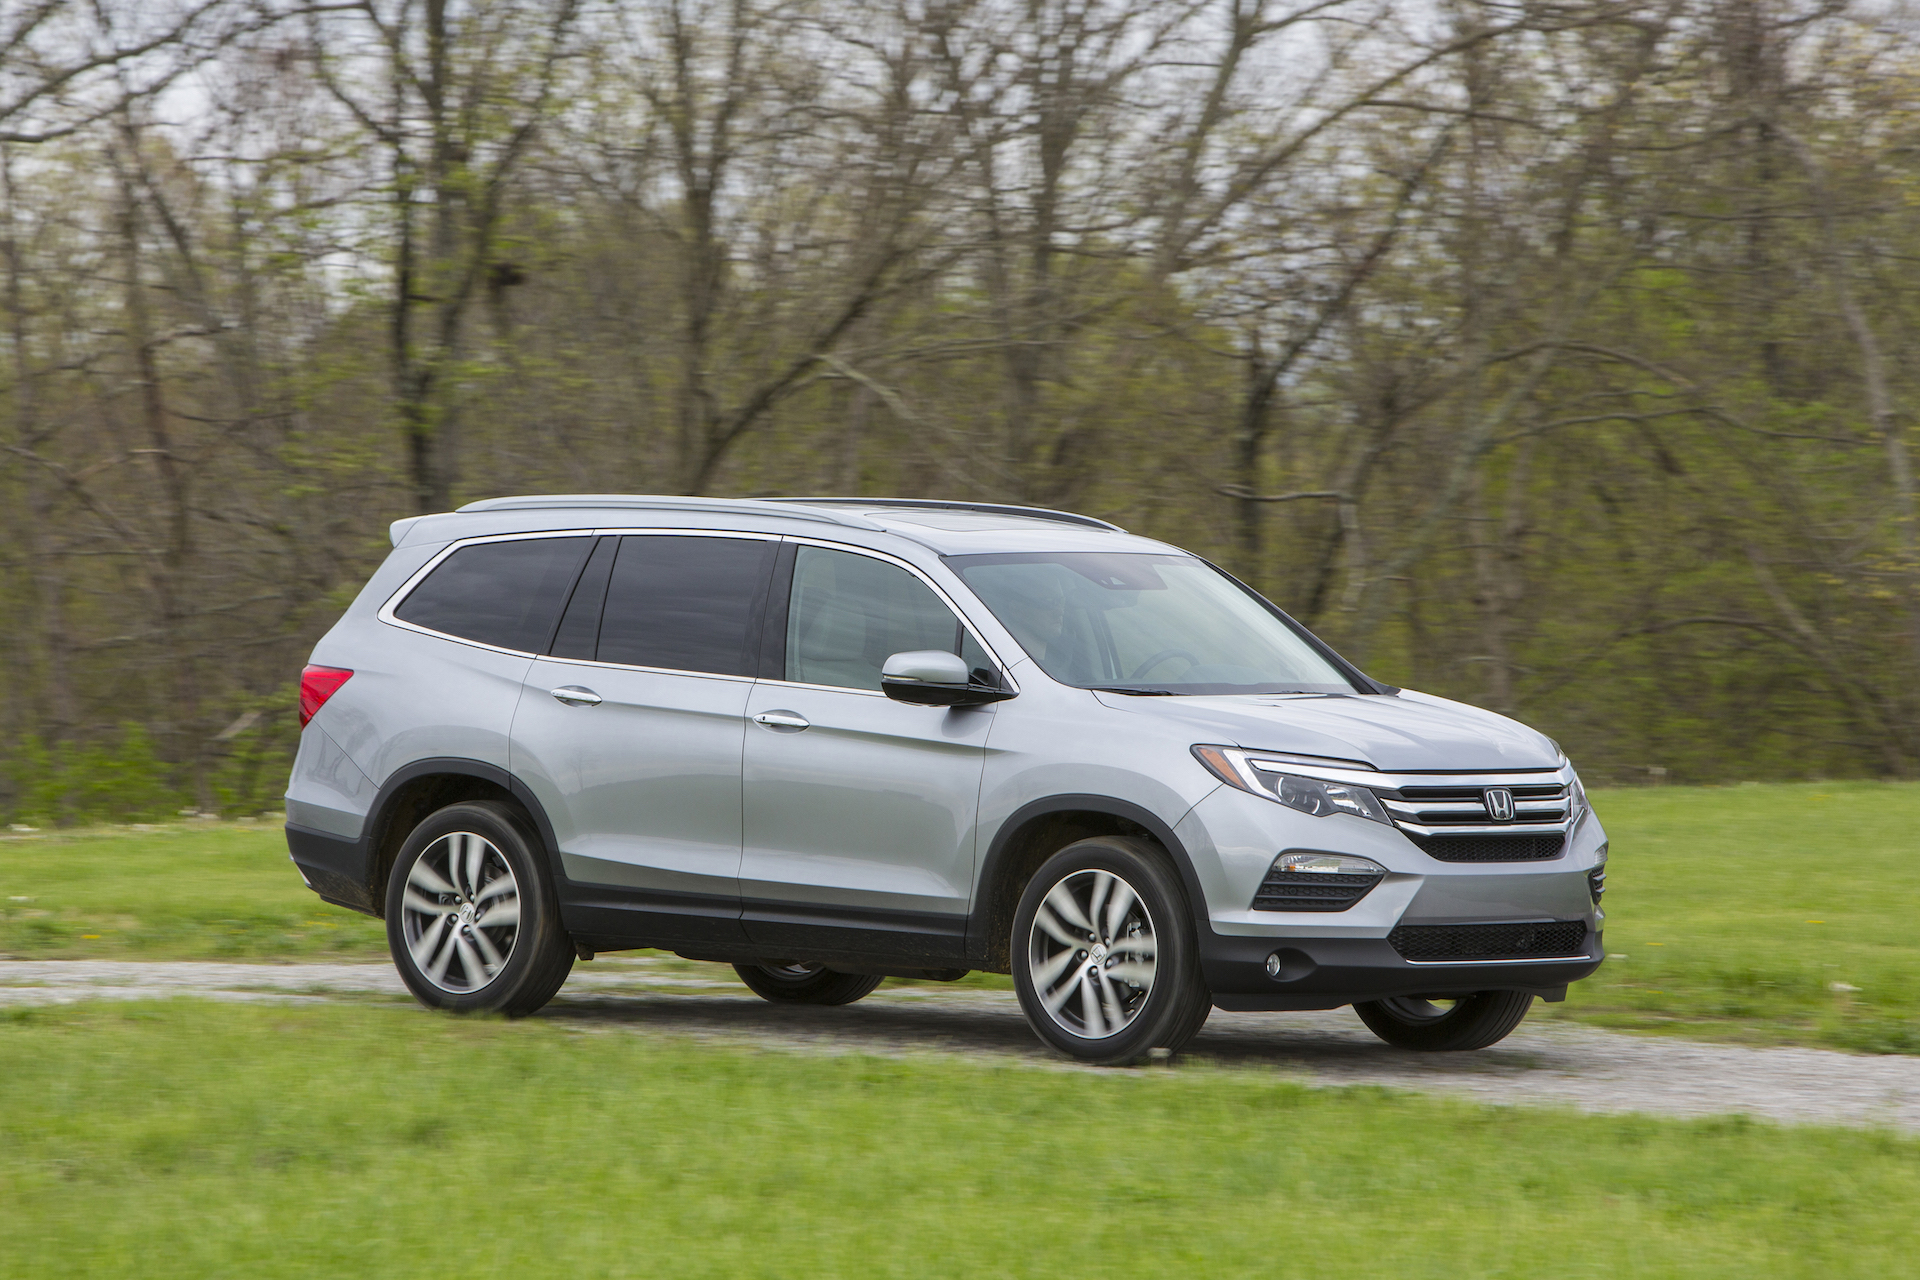 2017 honda pilot review ratings specs prices and for Honda pilot 2018 review